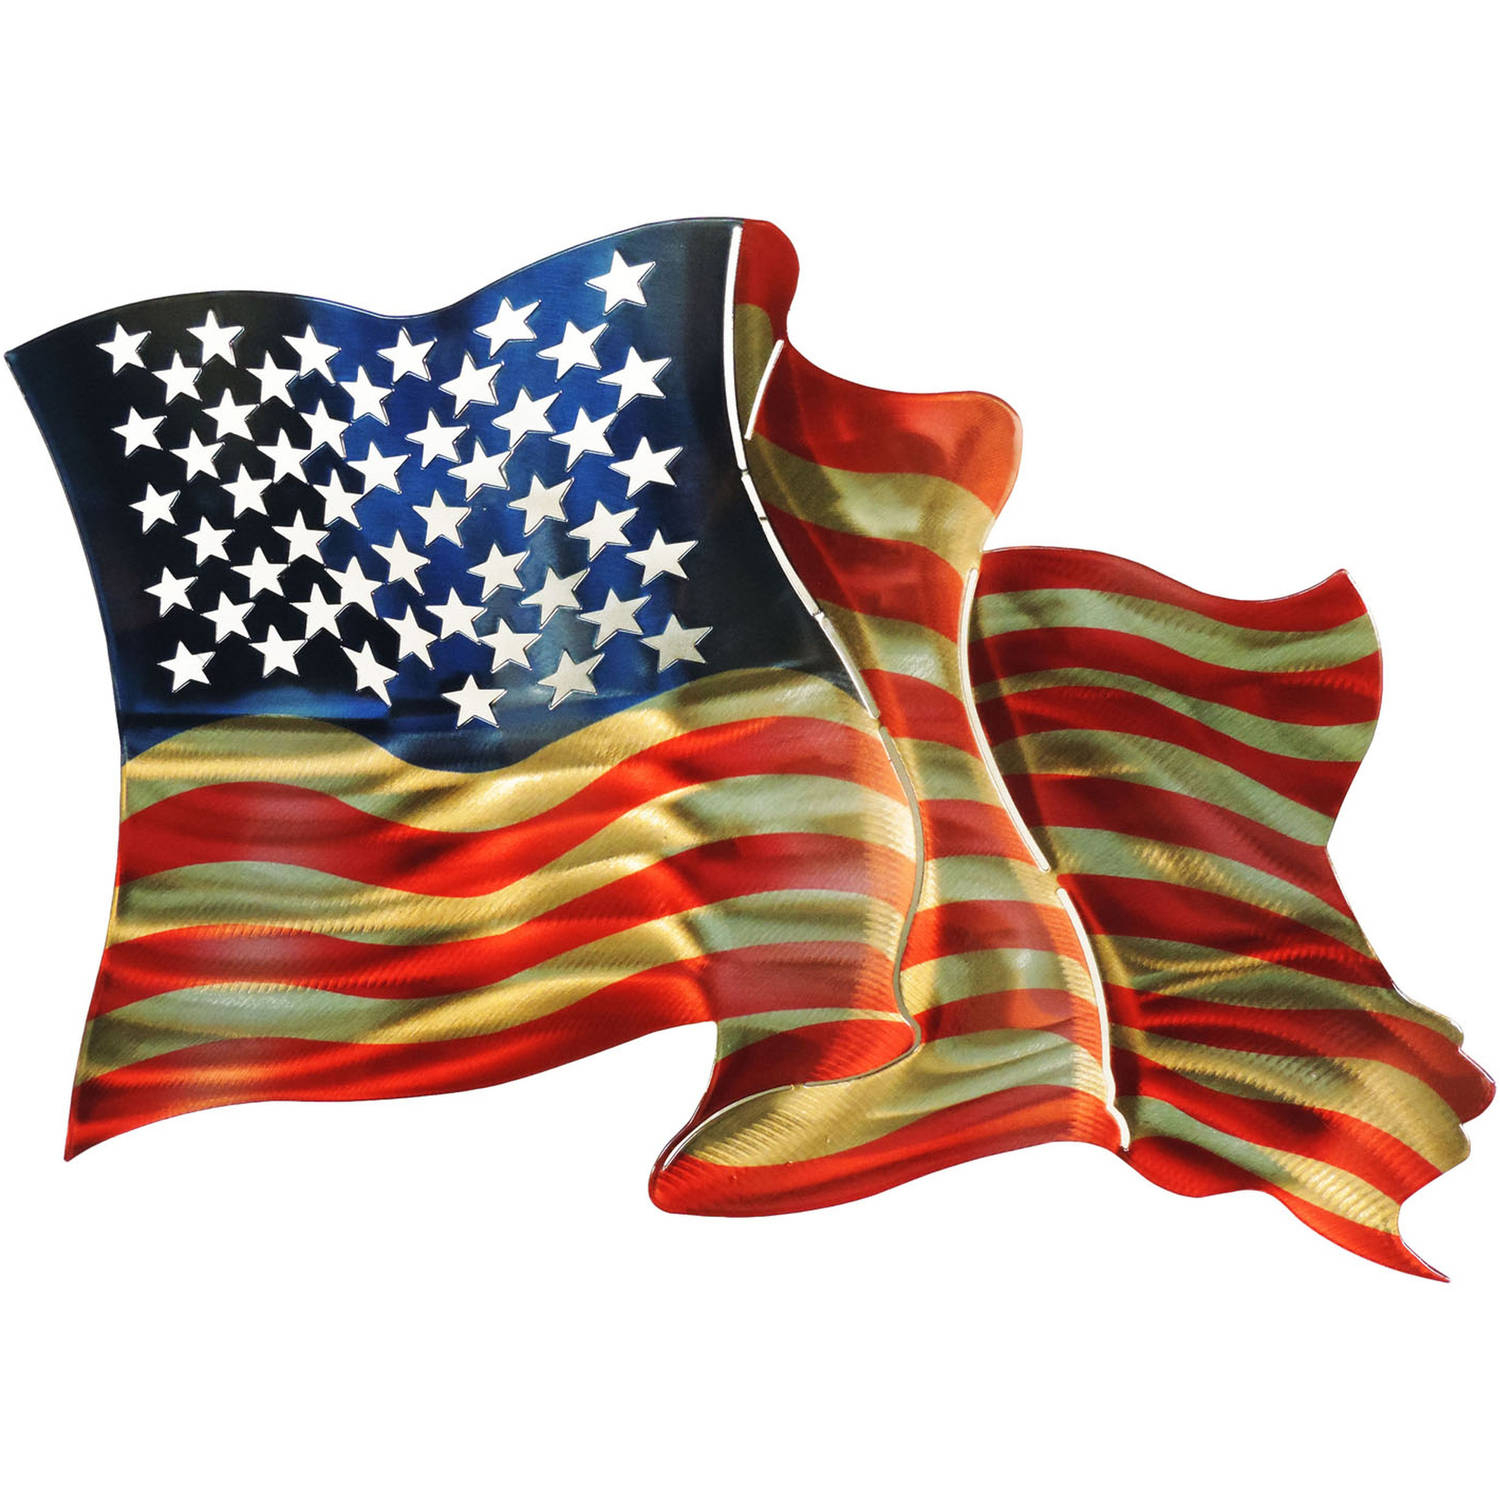 Popular American Flag 3d Wall Art Metal Wall Artnext Innovations With American Flag 3d Wall Decor (View 3 of 20)